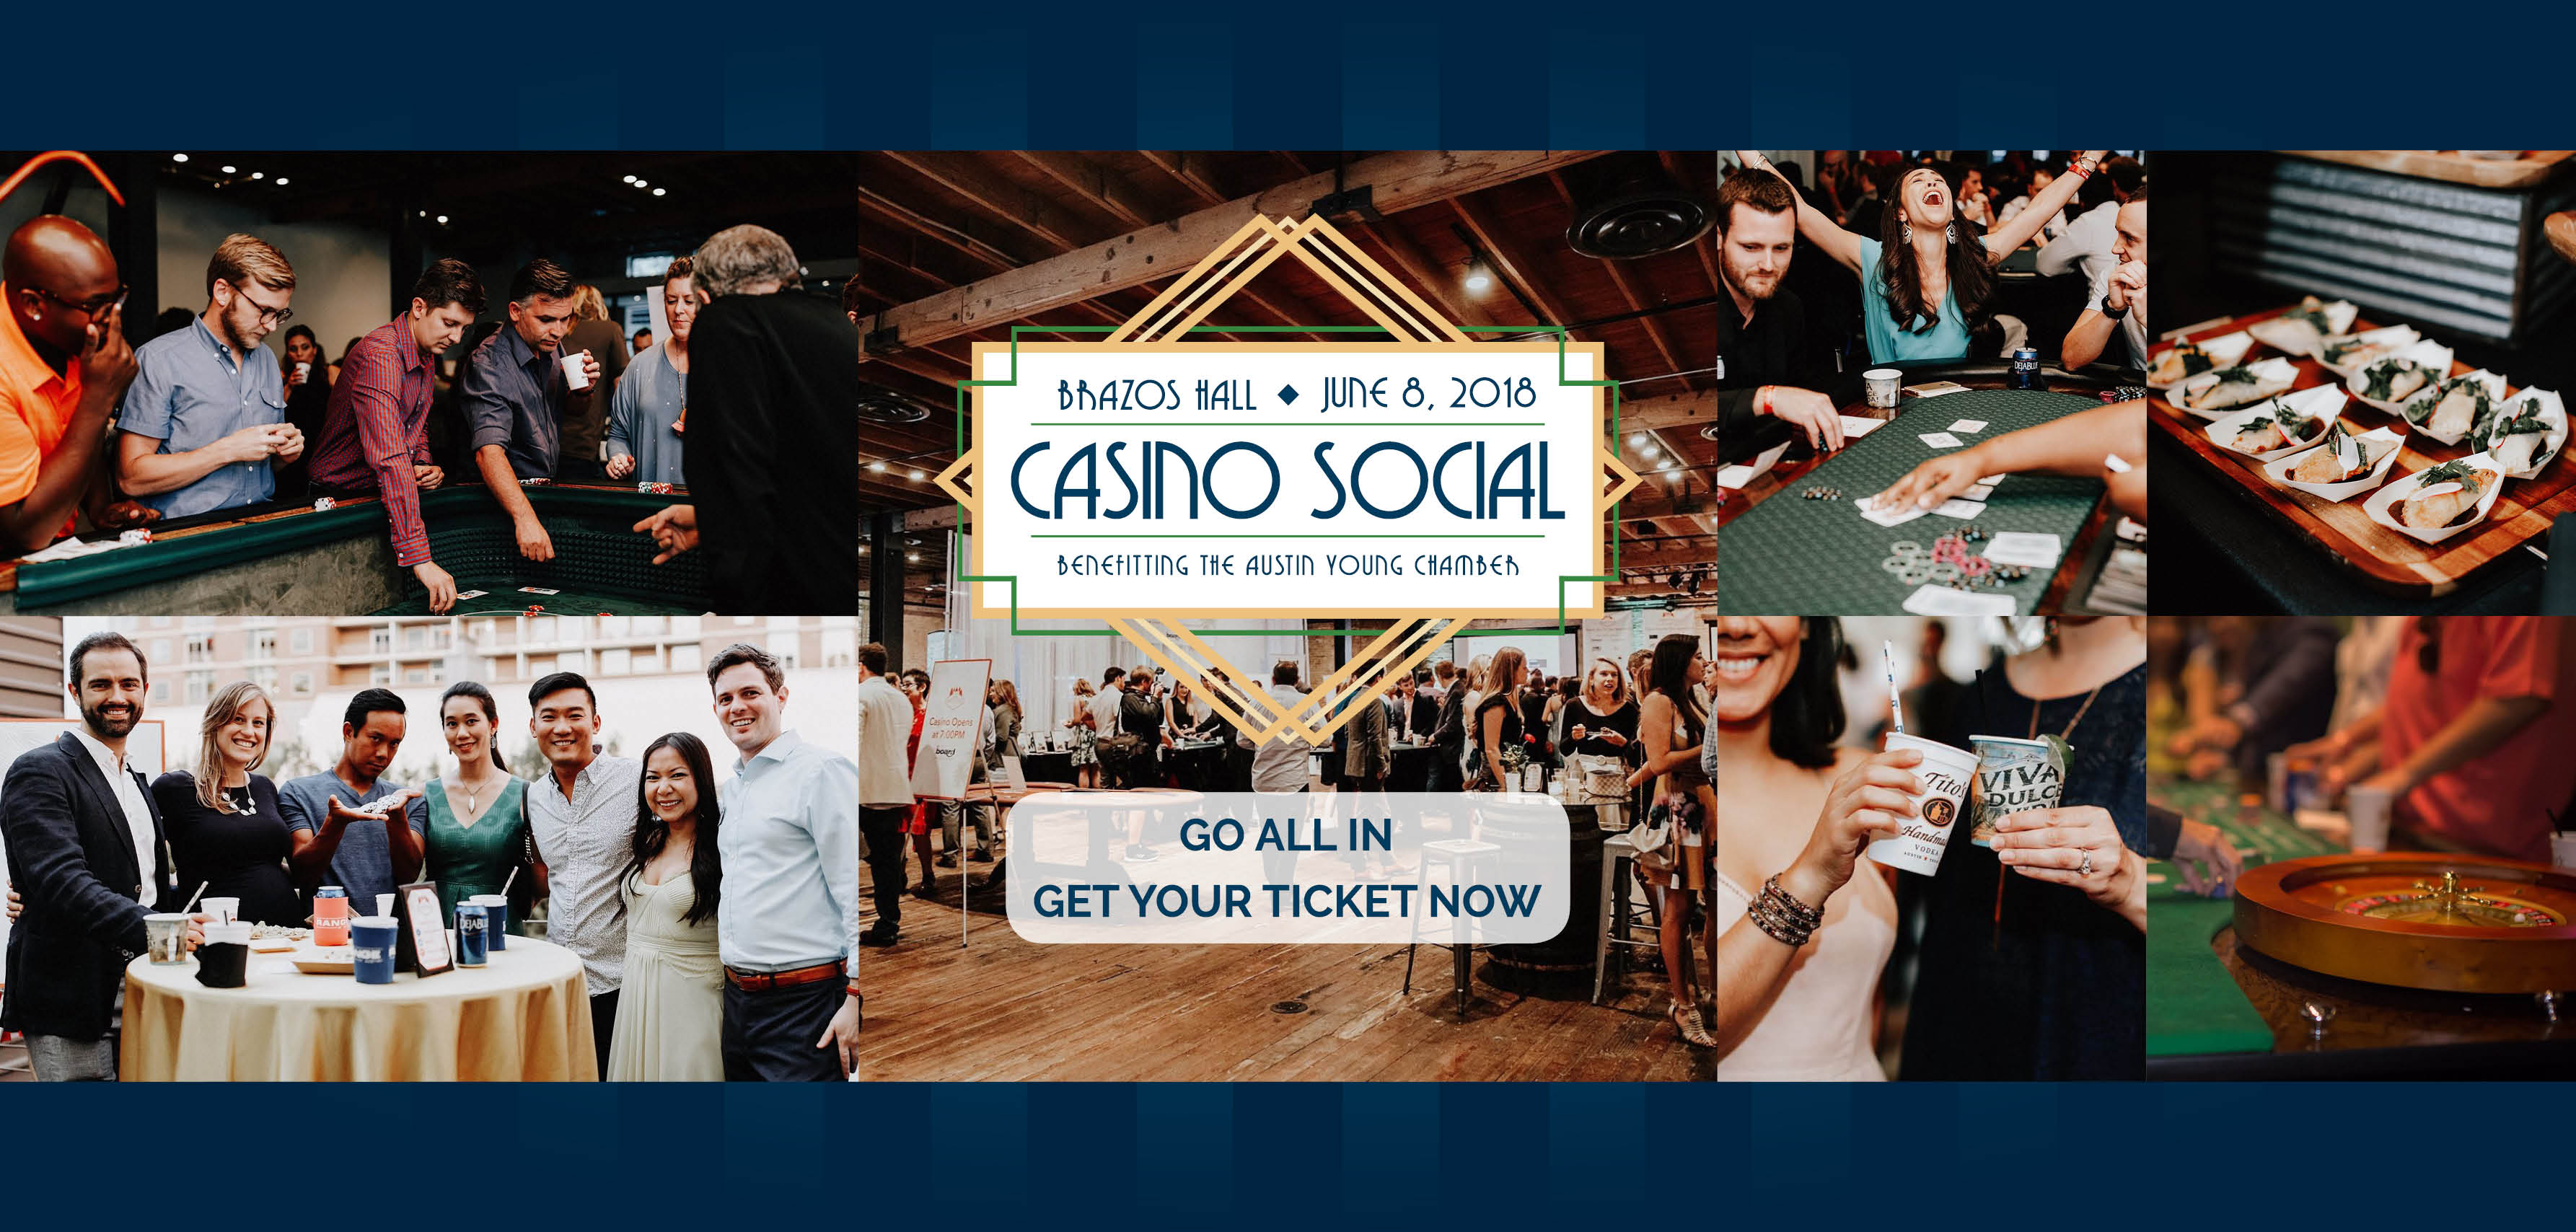 casinoSocial2018-2-1